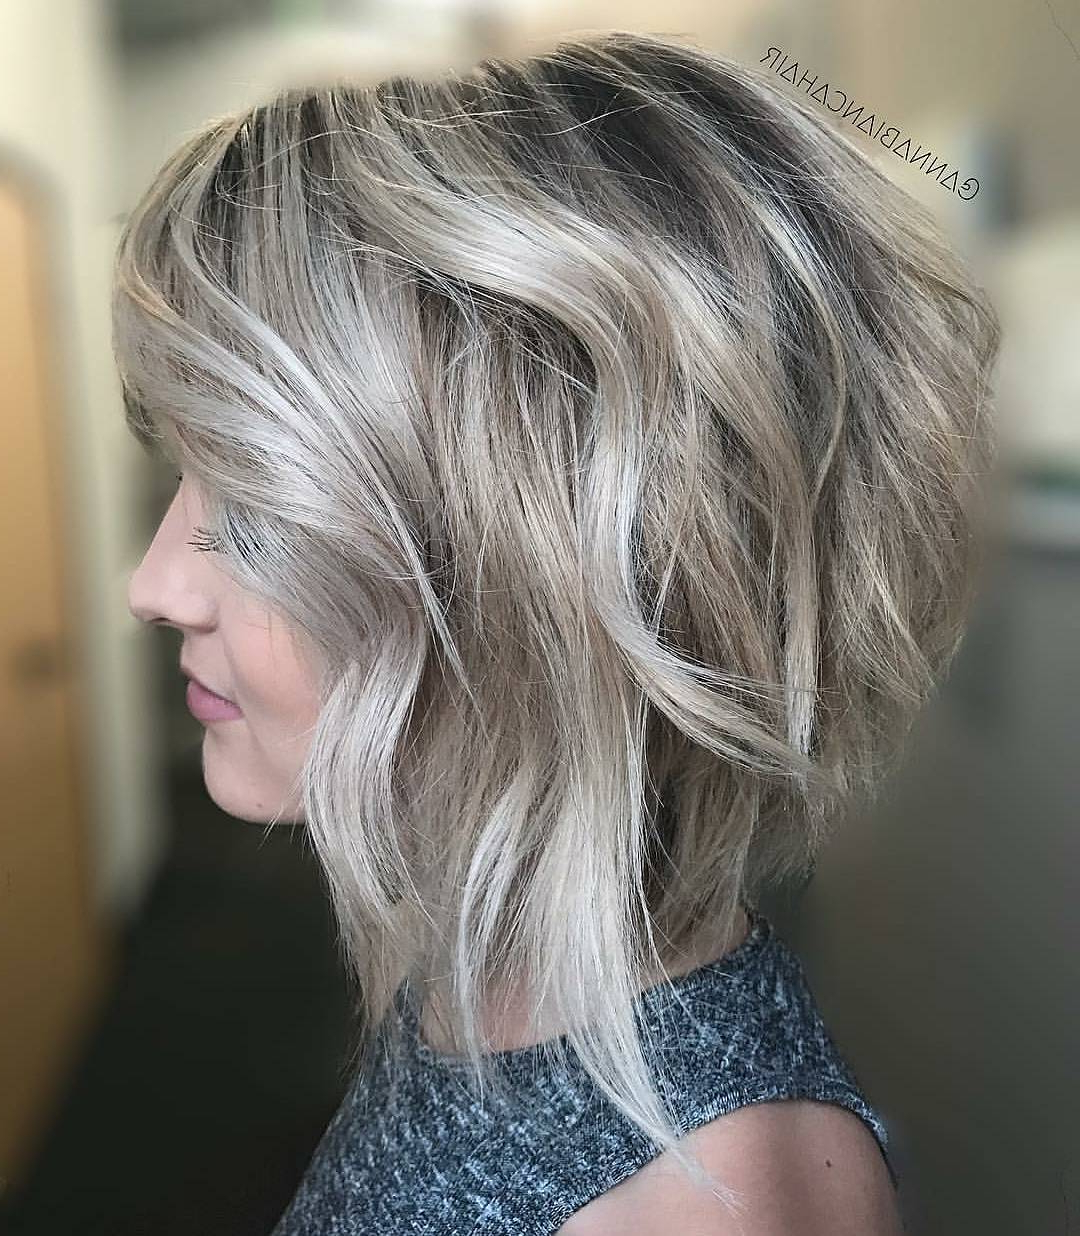 10 Stylish Medium Bob Haircuts For Women – Easy Care Chic Bob Hair 2019 Throughout Gray Bob Hairstyles With Delicate Layers (View 4 of 20)